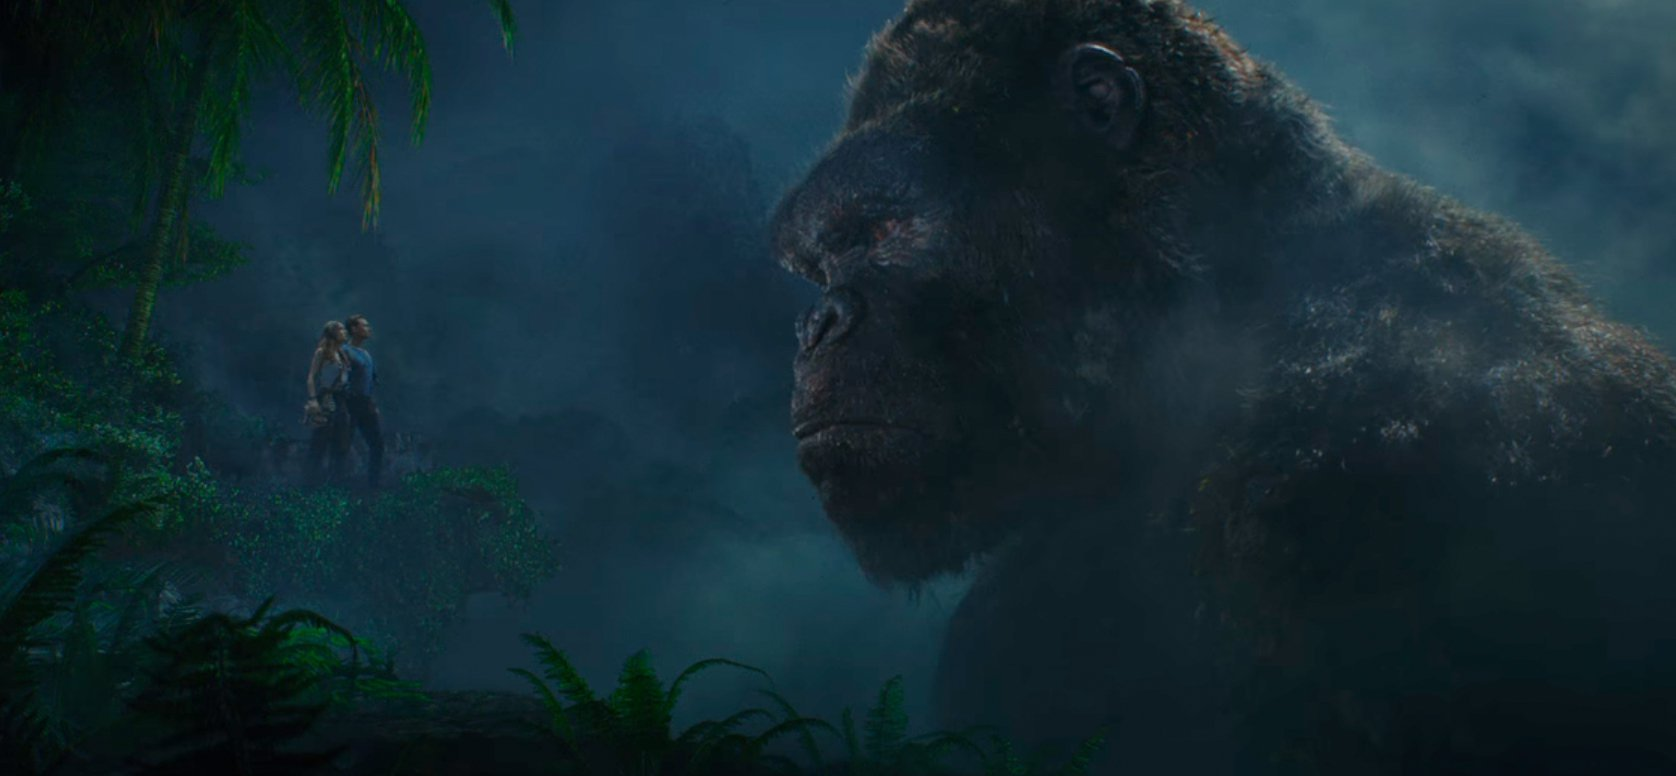 Kong skull island hot movie 2017